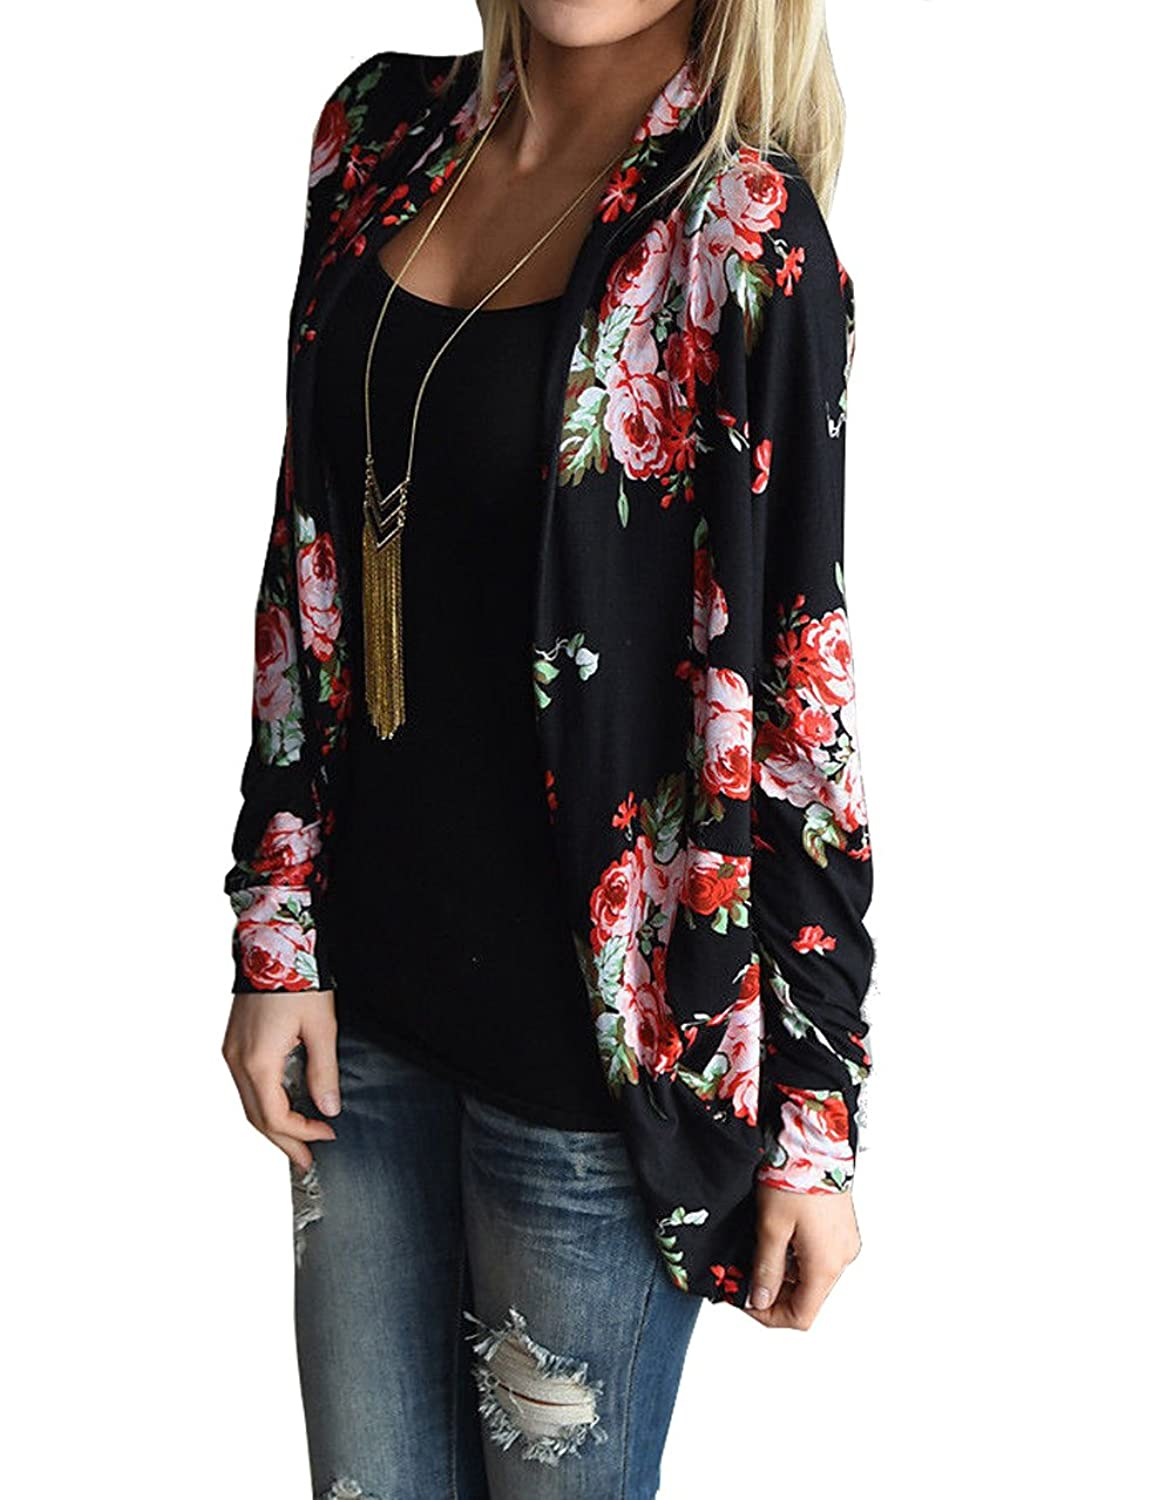 relipop womens floral long sleeve wrap kimono cardigans jacket coat small black apparel. Black Bedroom Furniture Sets. Home Design Ideas